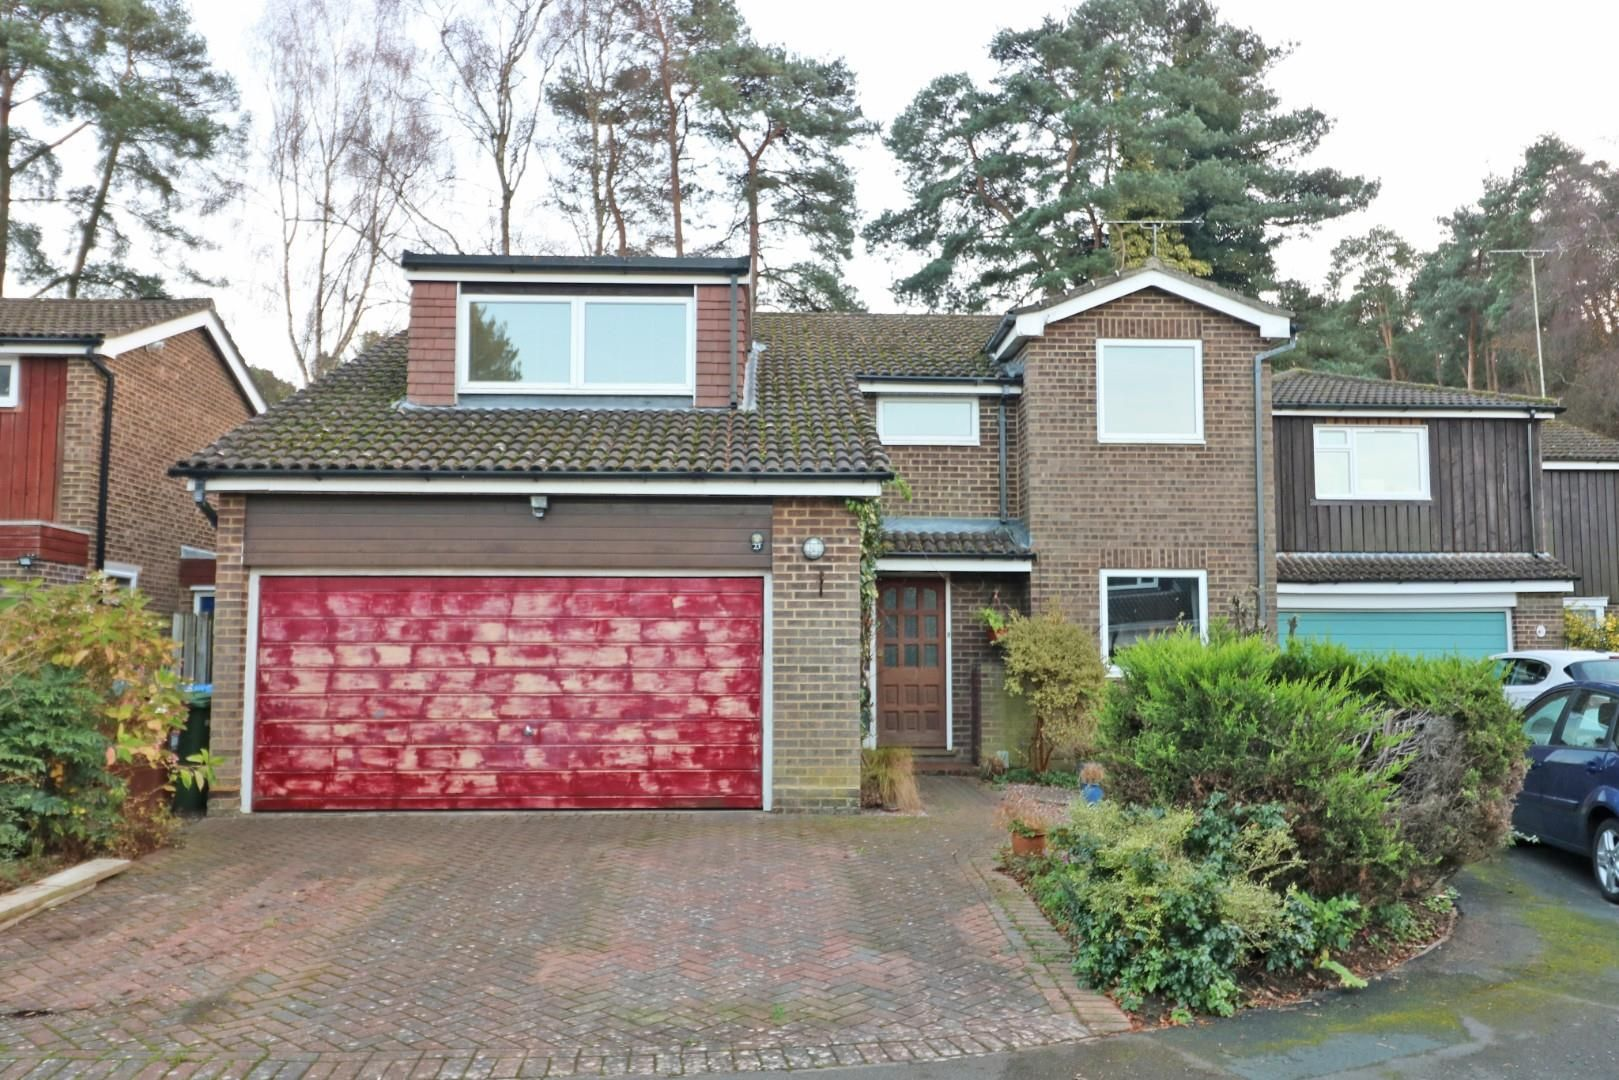 5 bed detached for sale in Wooden Hill, RG12